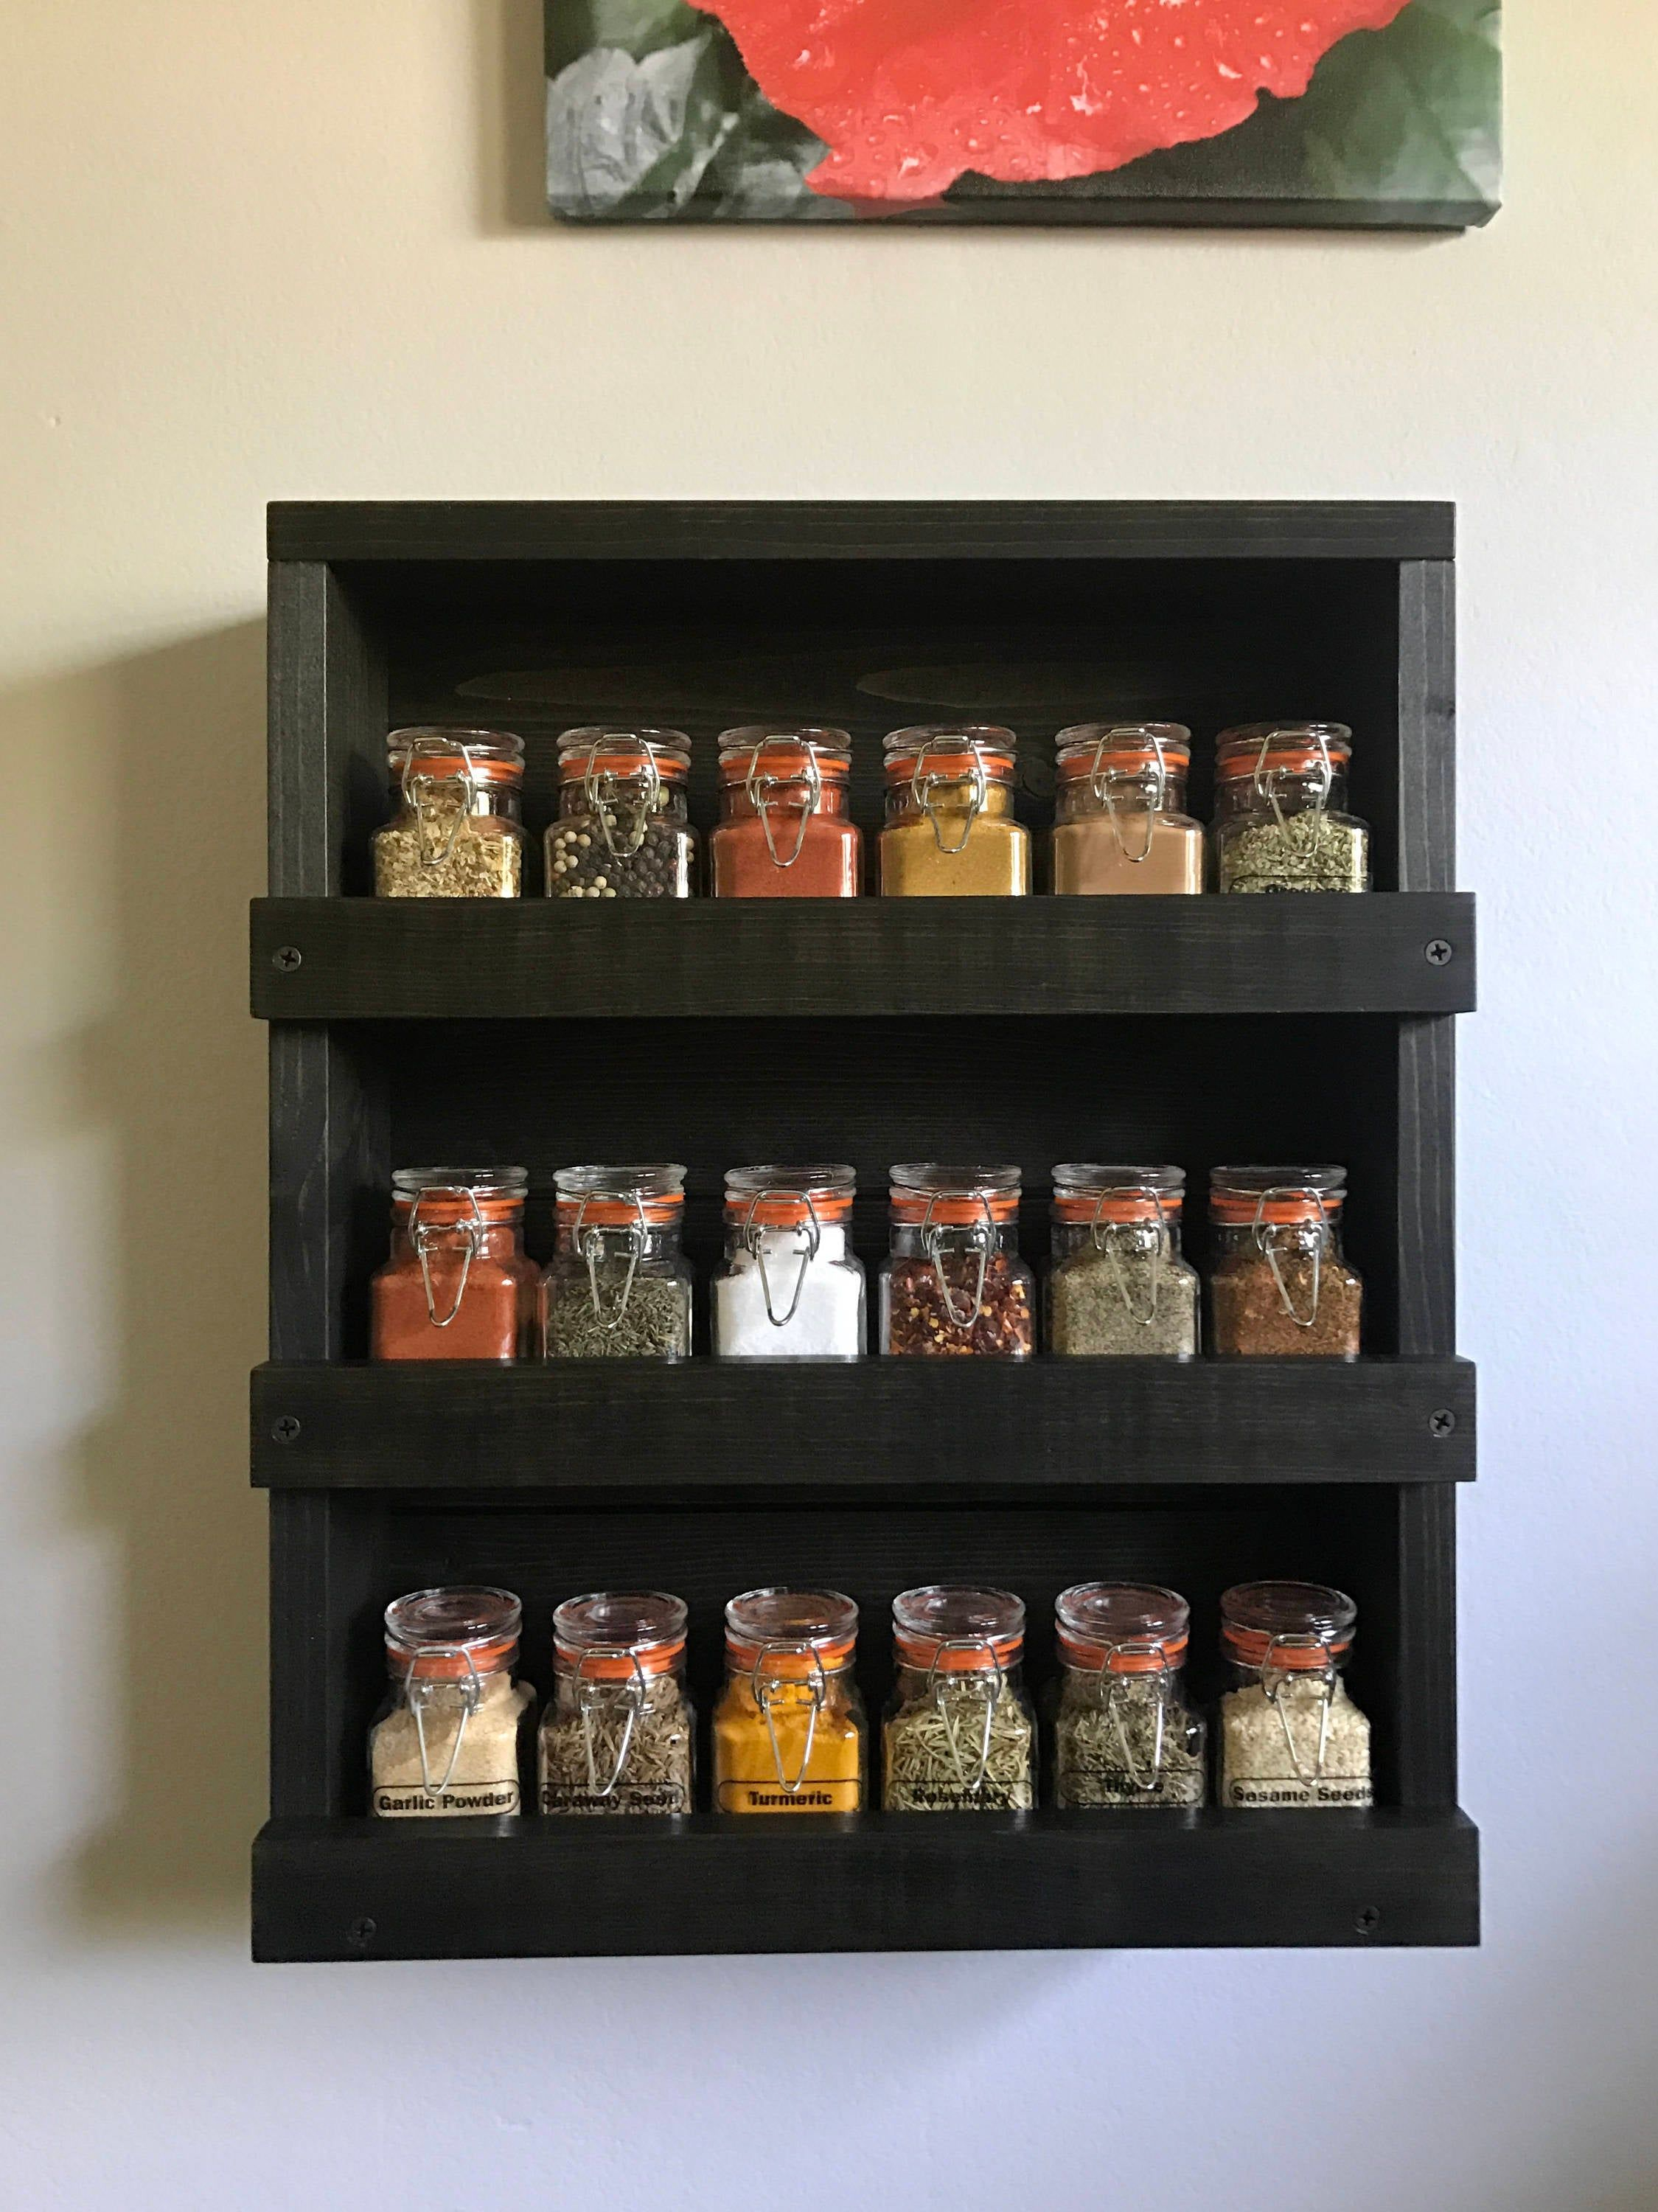 Spice Rack Kitchen Organizer Spice Storage Wood Wall Mounted Spice Organizer Modern Kitchen Shelves Farmhouse Barn House Spice Storage Modern Kitchen Shelves Wall Mounted Spice Rack Spice Storage